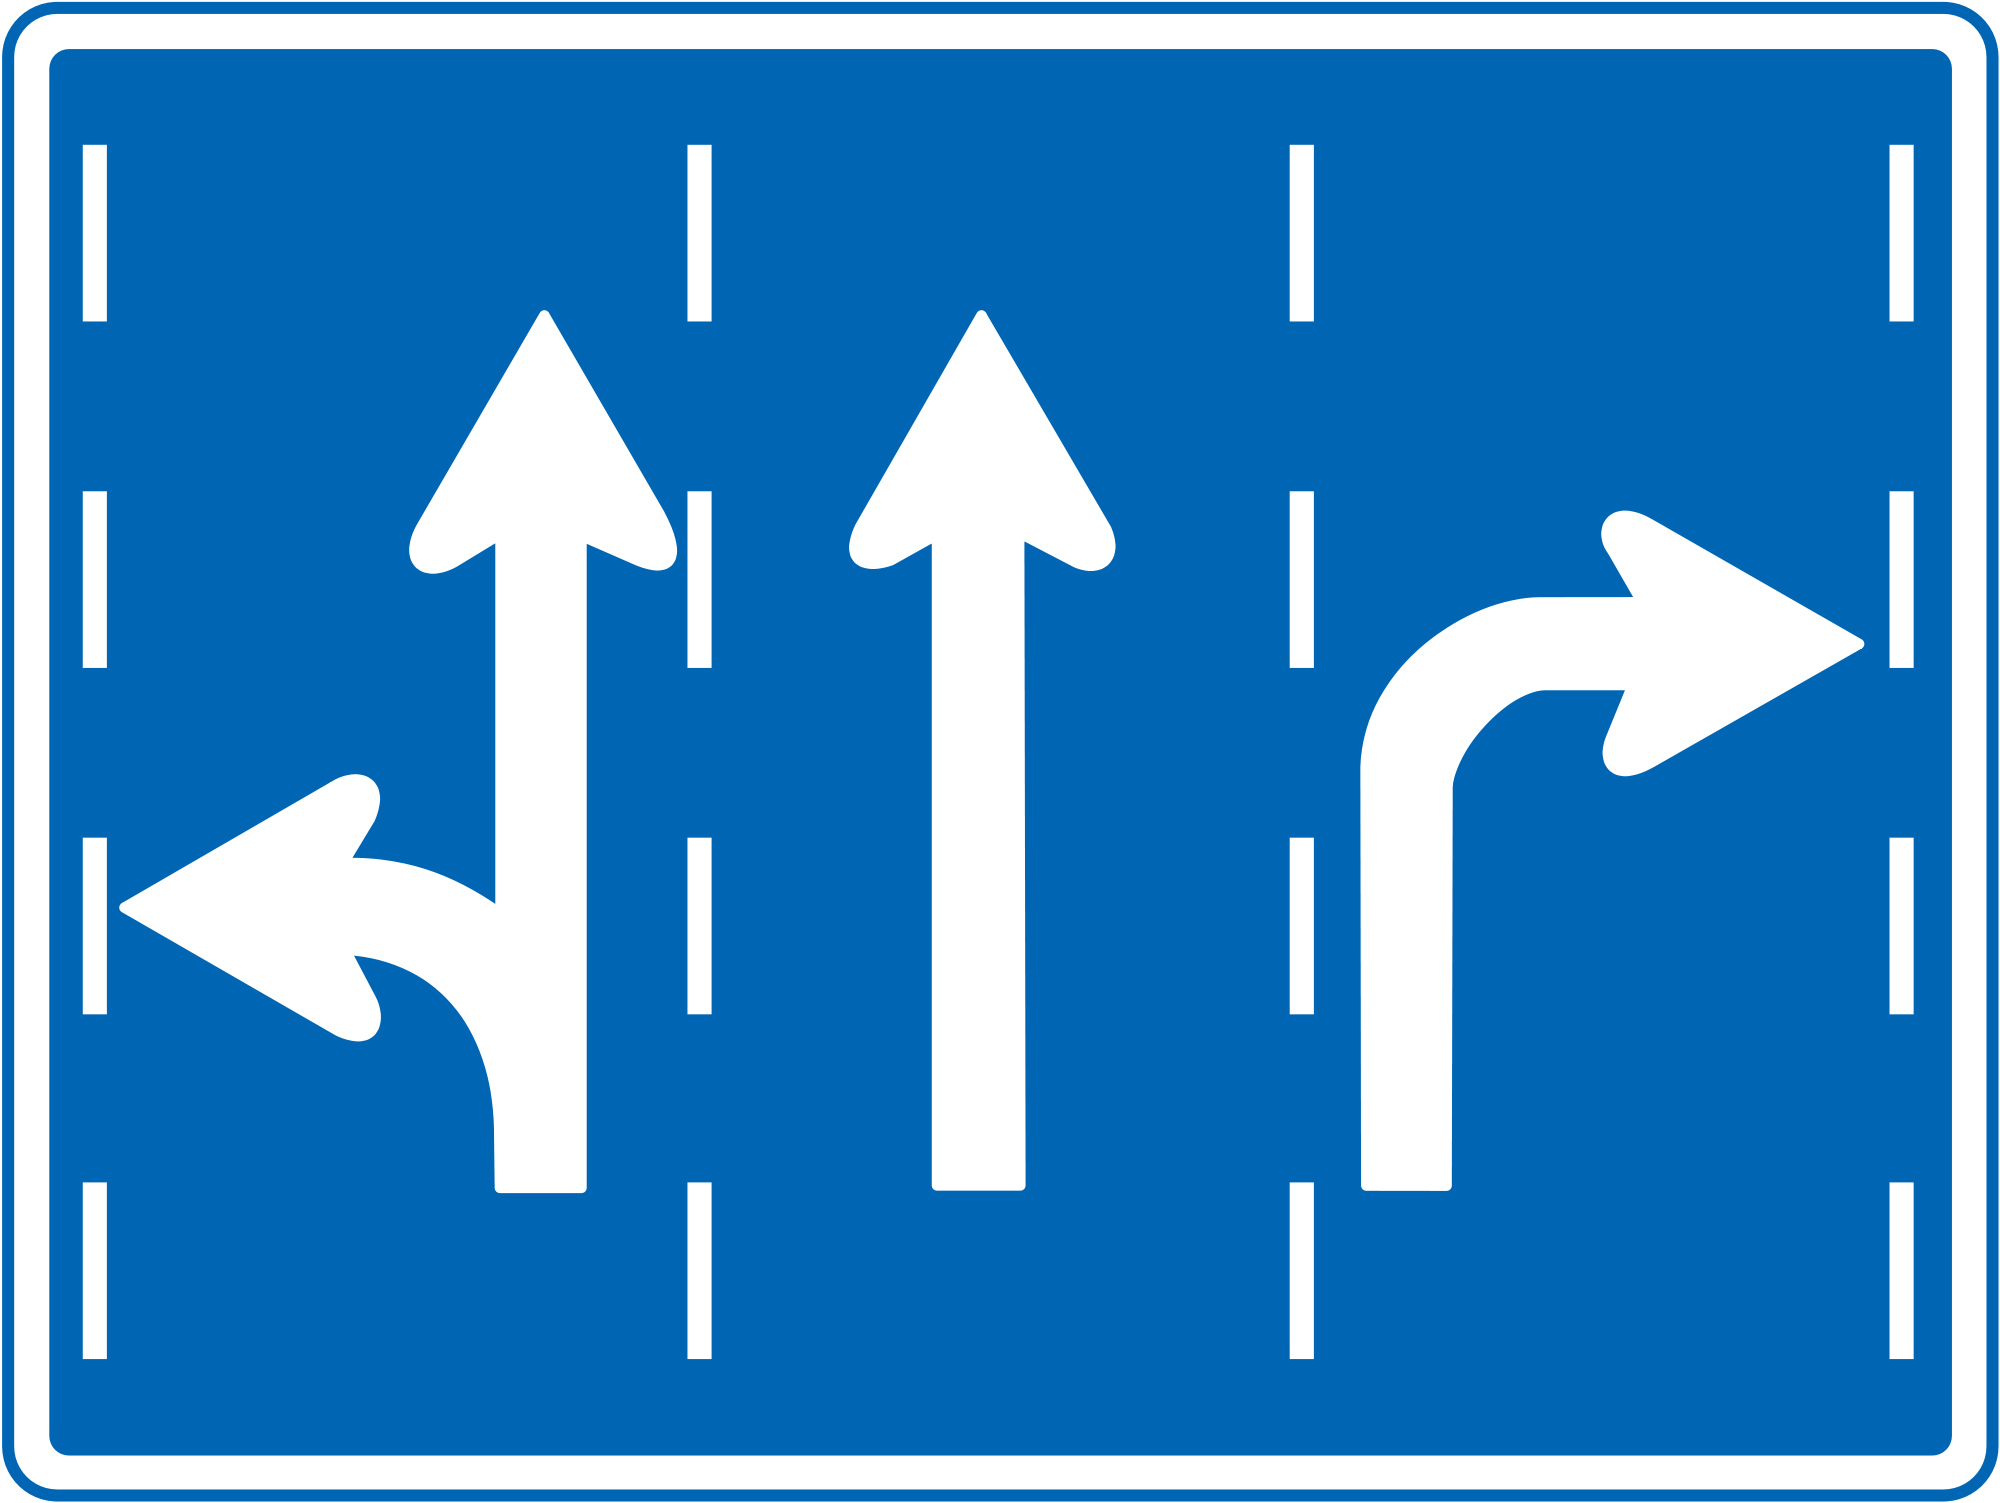 Direction road sign photo